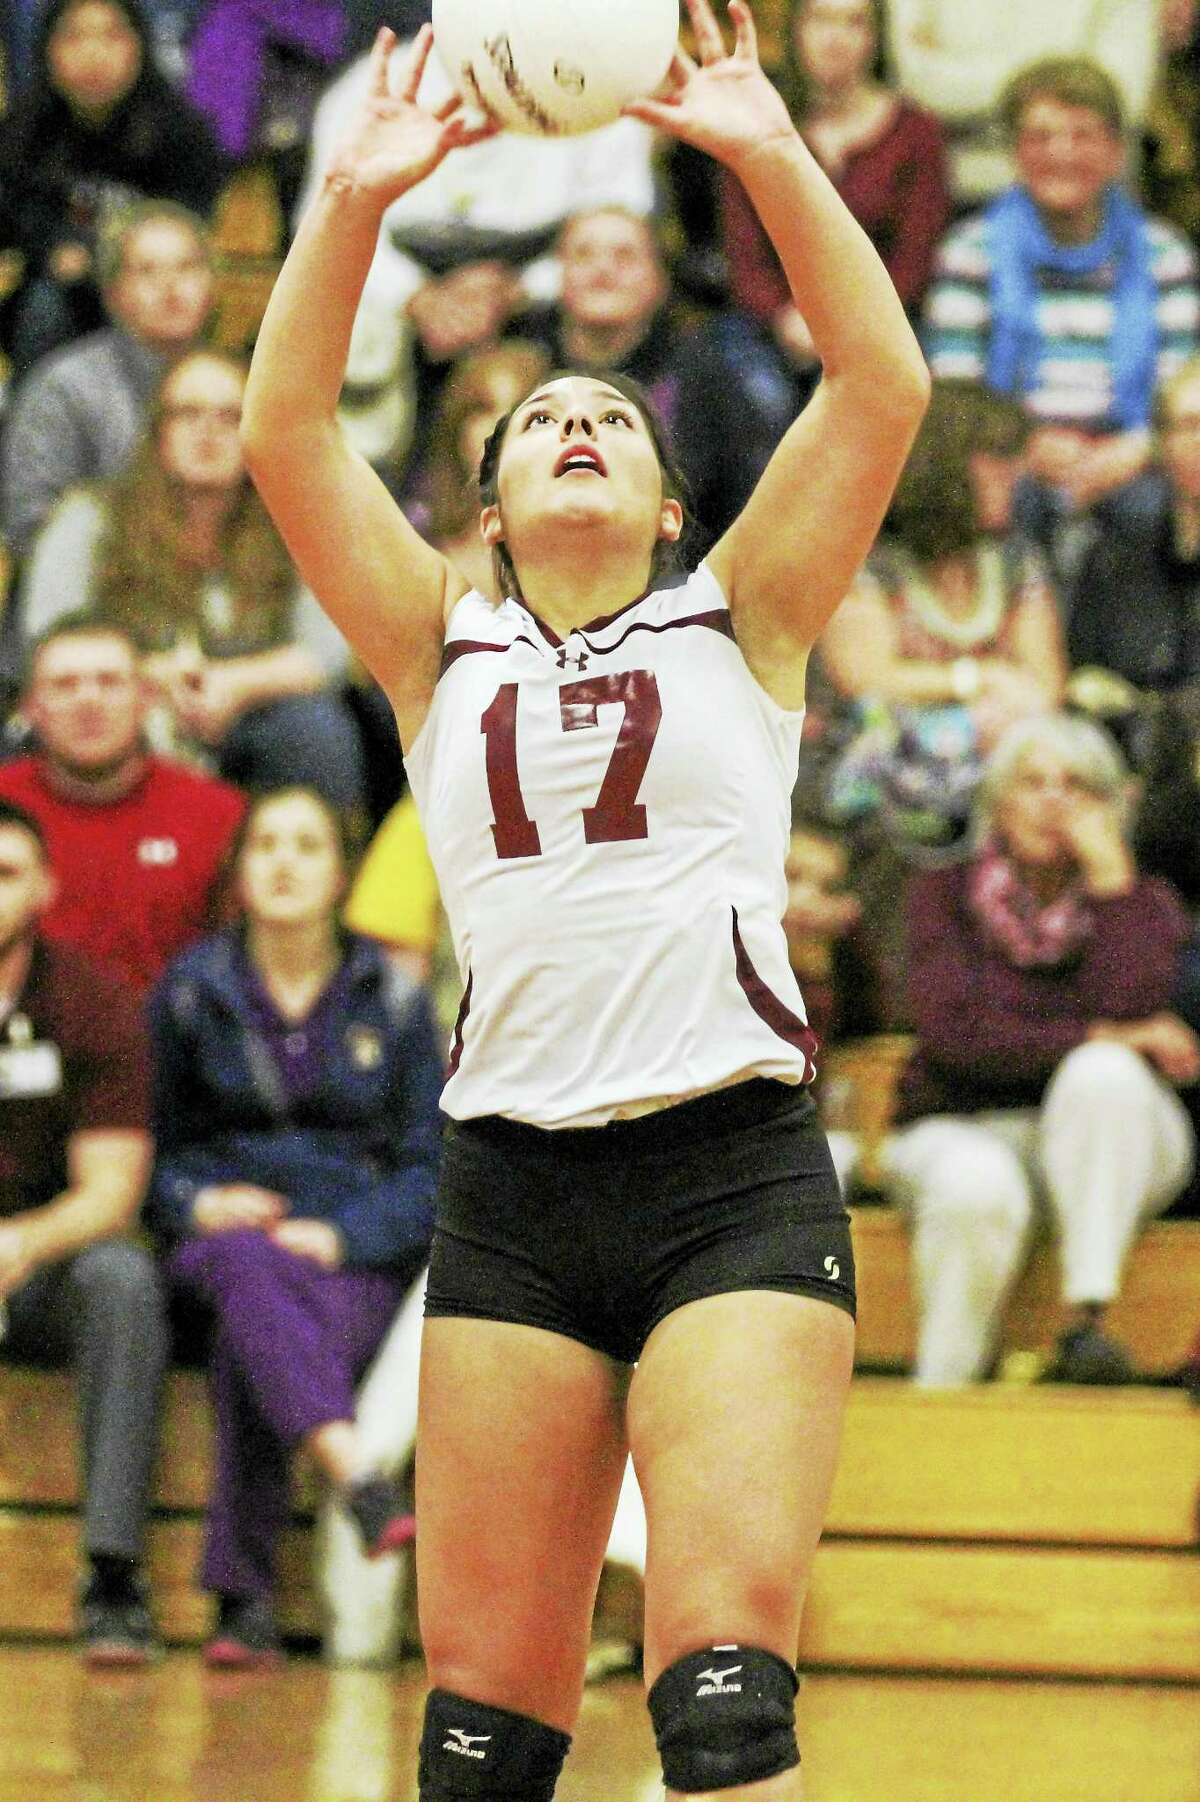 Torrington setter Jayleen Colon, with 33 assists in Friday's win over Tolland, is part of the calm willpower that drives the Red Raiders this year.